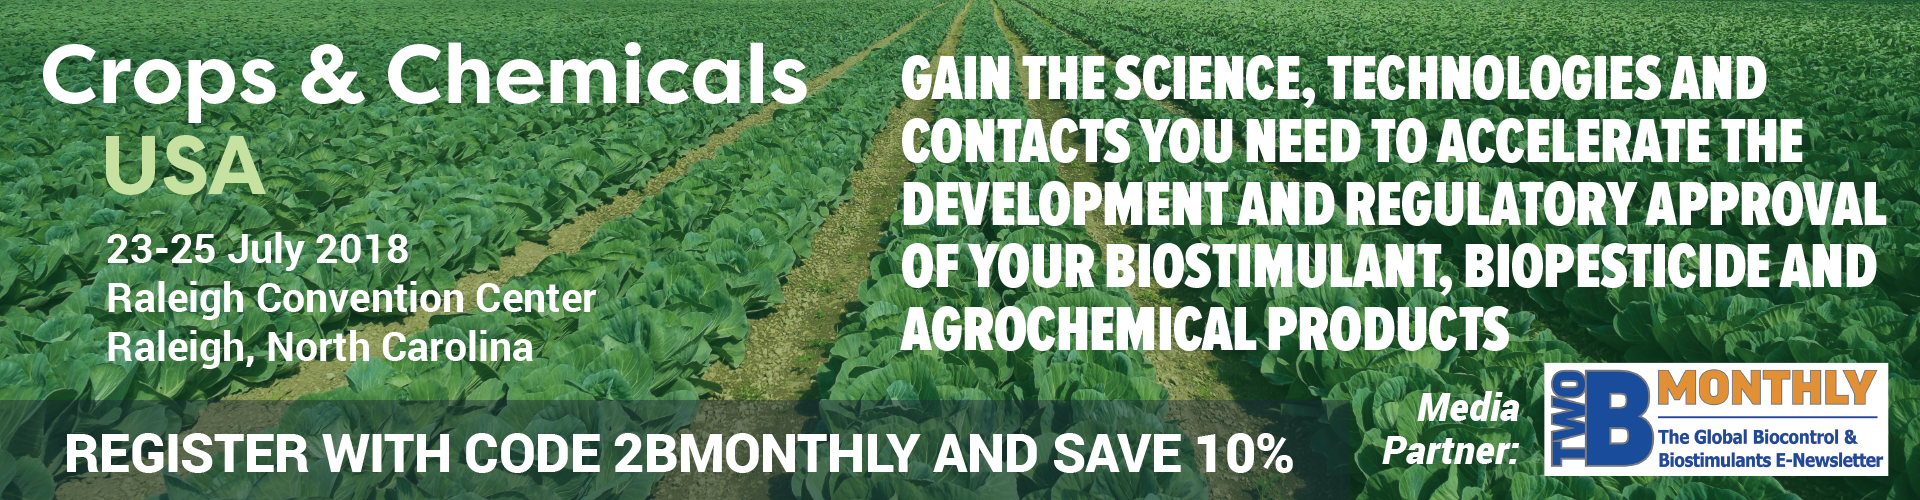 Crops & Chemicals USA